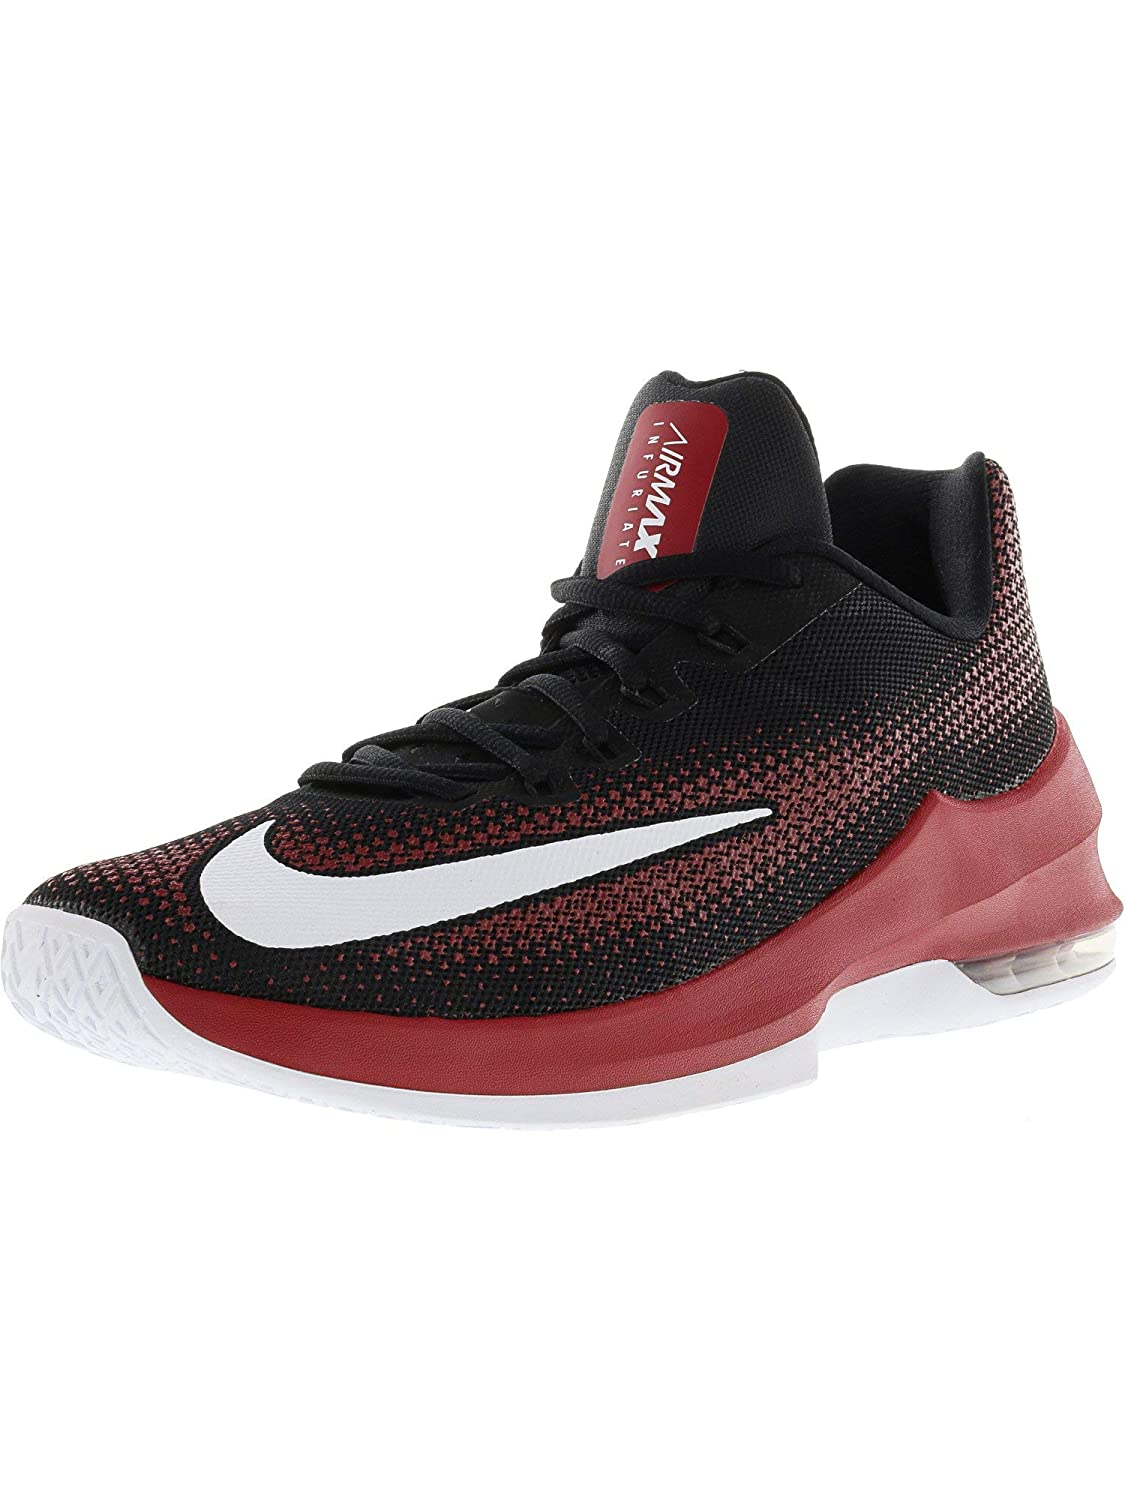 reputable site efb3b 59873 Nike Air Max Infuriate Low Black White Gym Red Dark Grey Men s Basketball  Shoes  Buy Online at Low Prices in India - Amazon.in